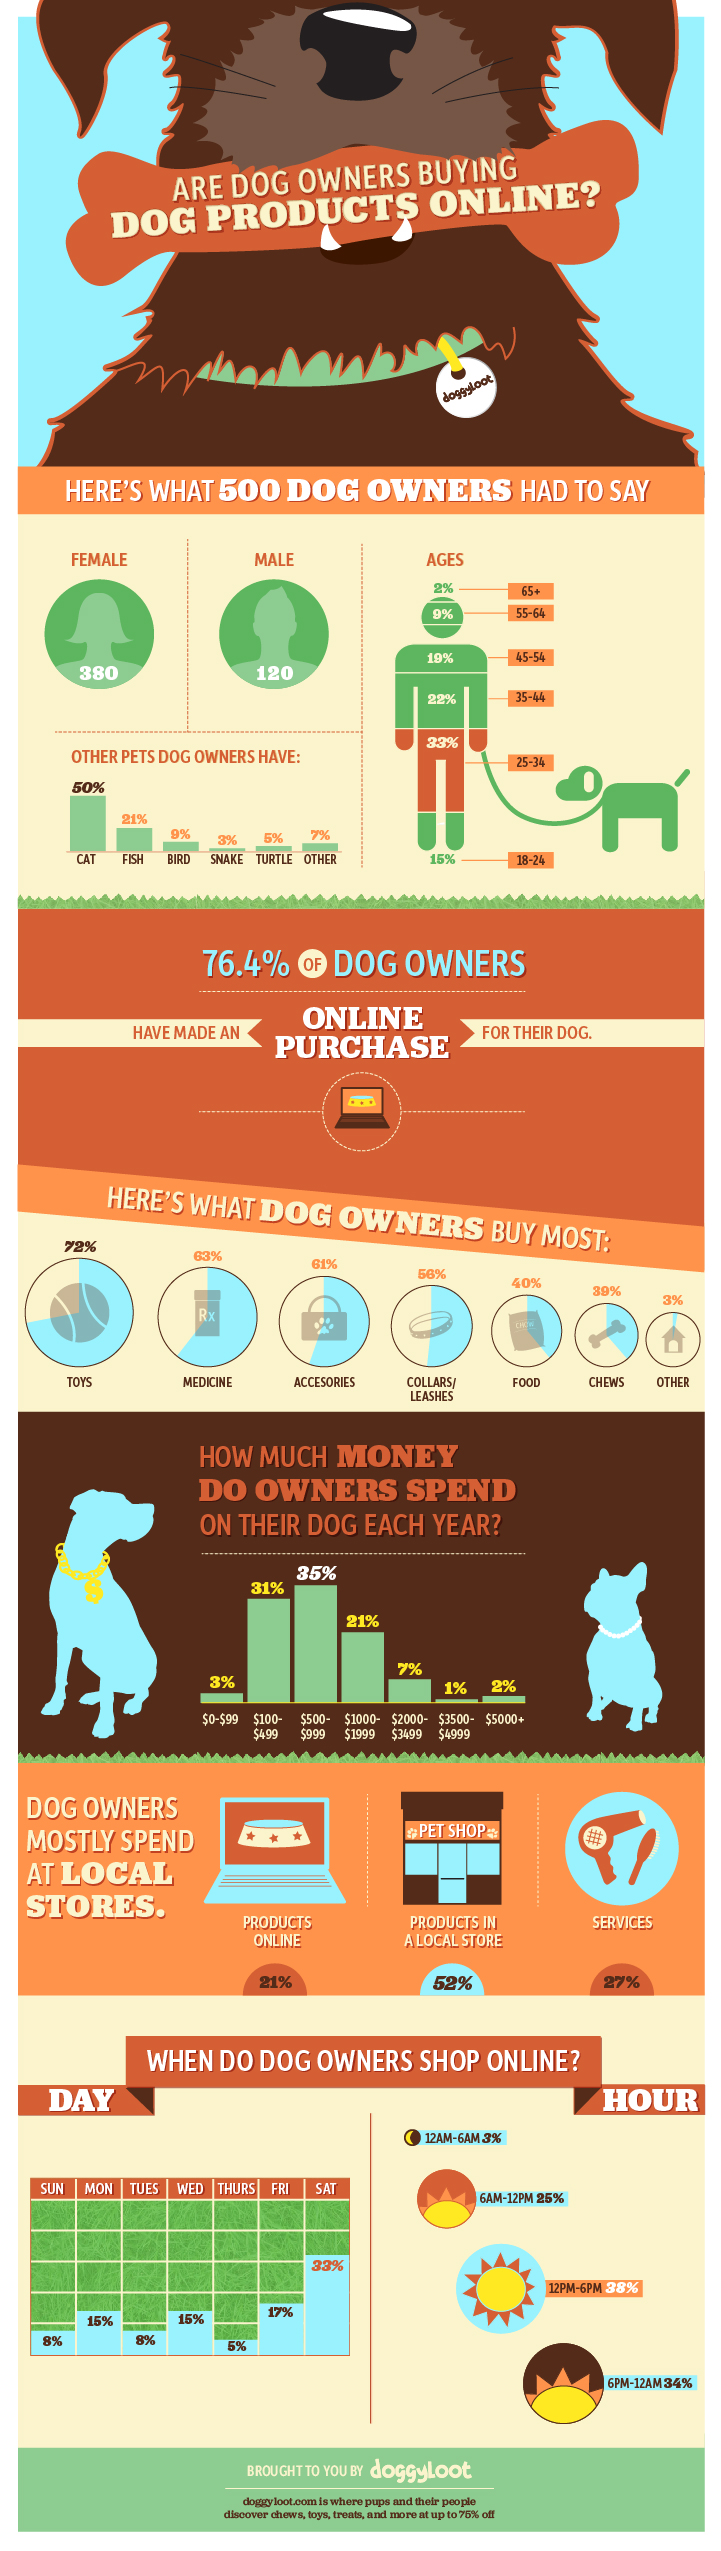 Are dog owners buying dog products online?